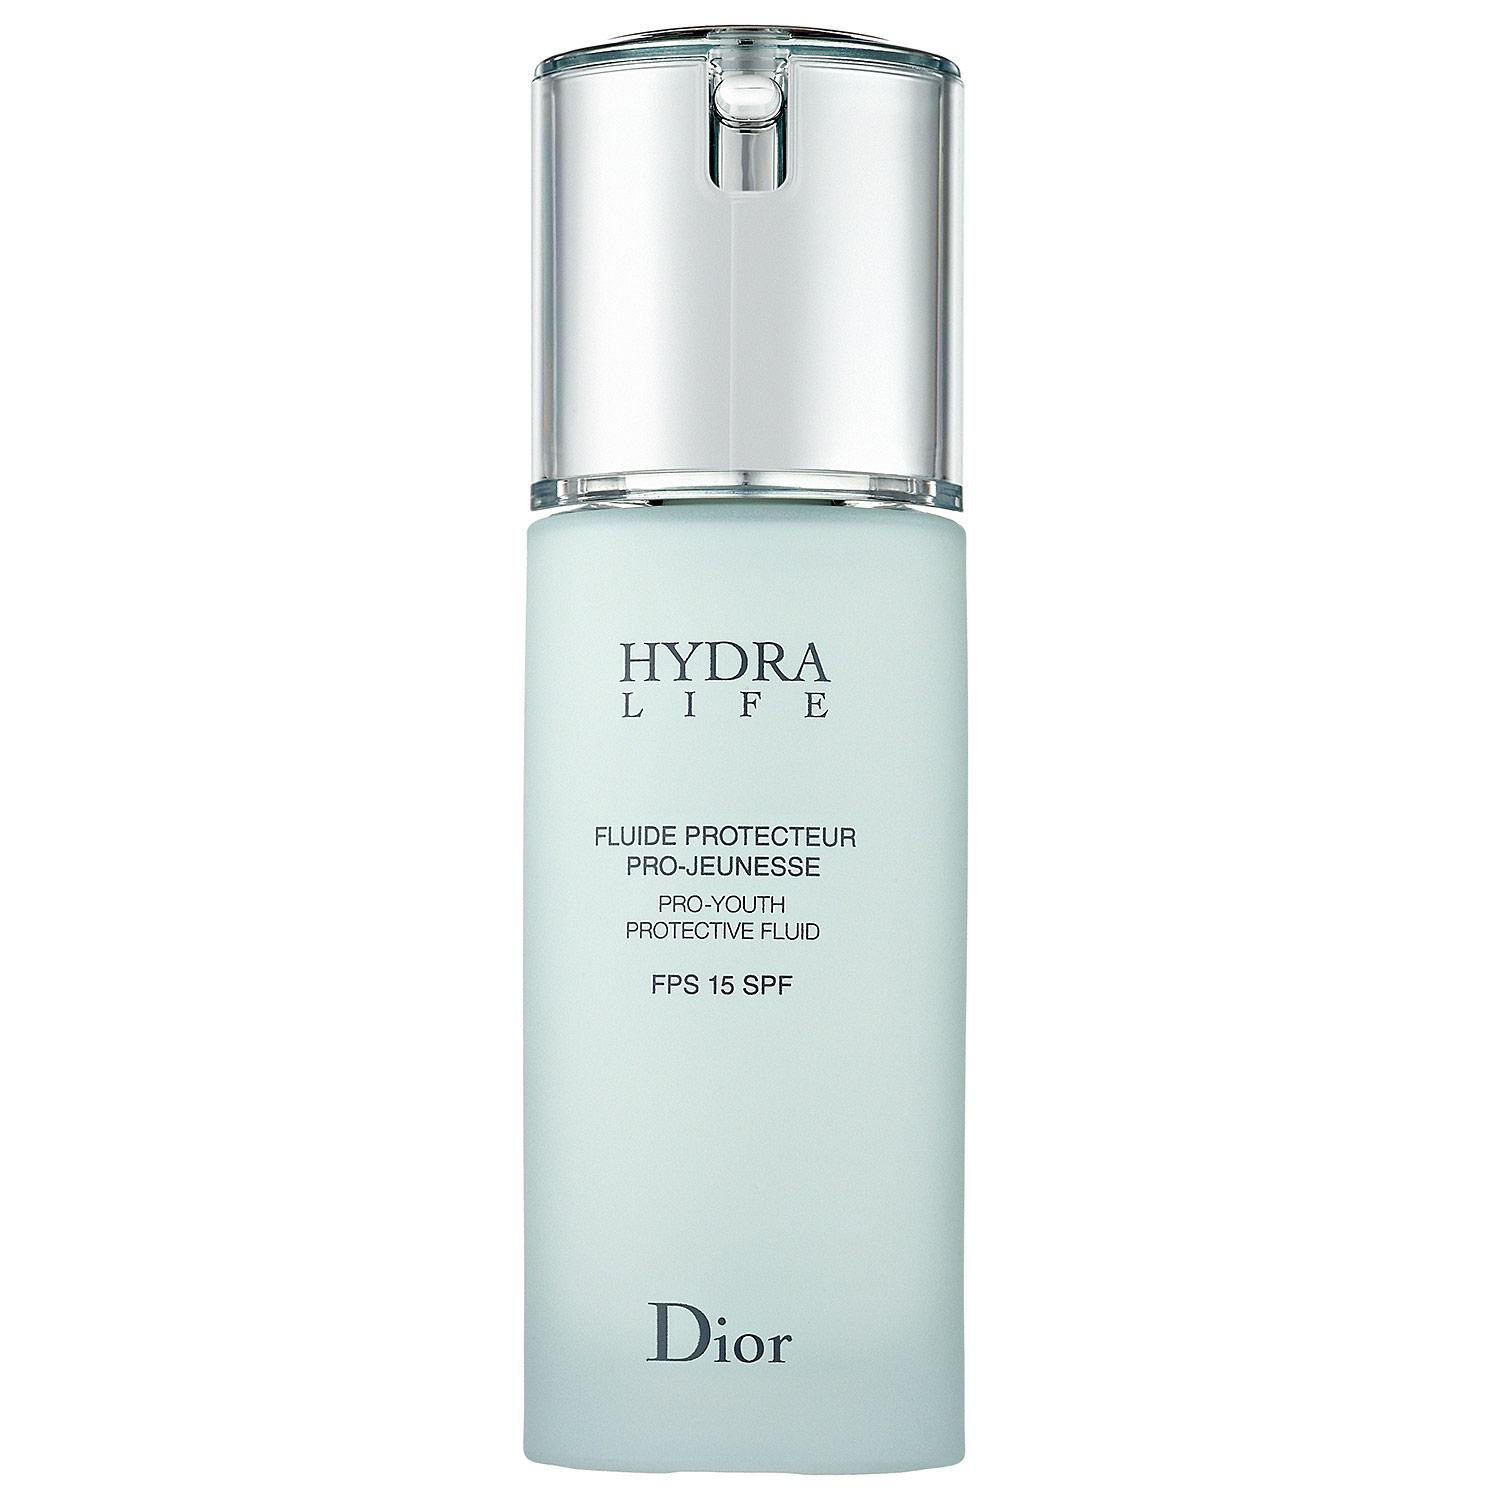 Hydra Life Pro-Youth Protective Fluid SPF 15